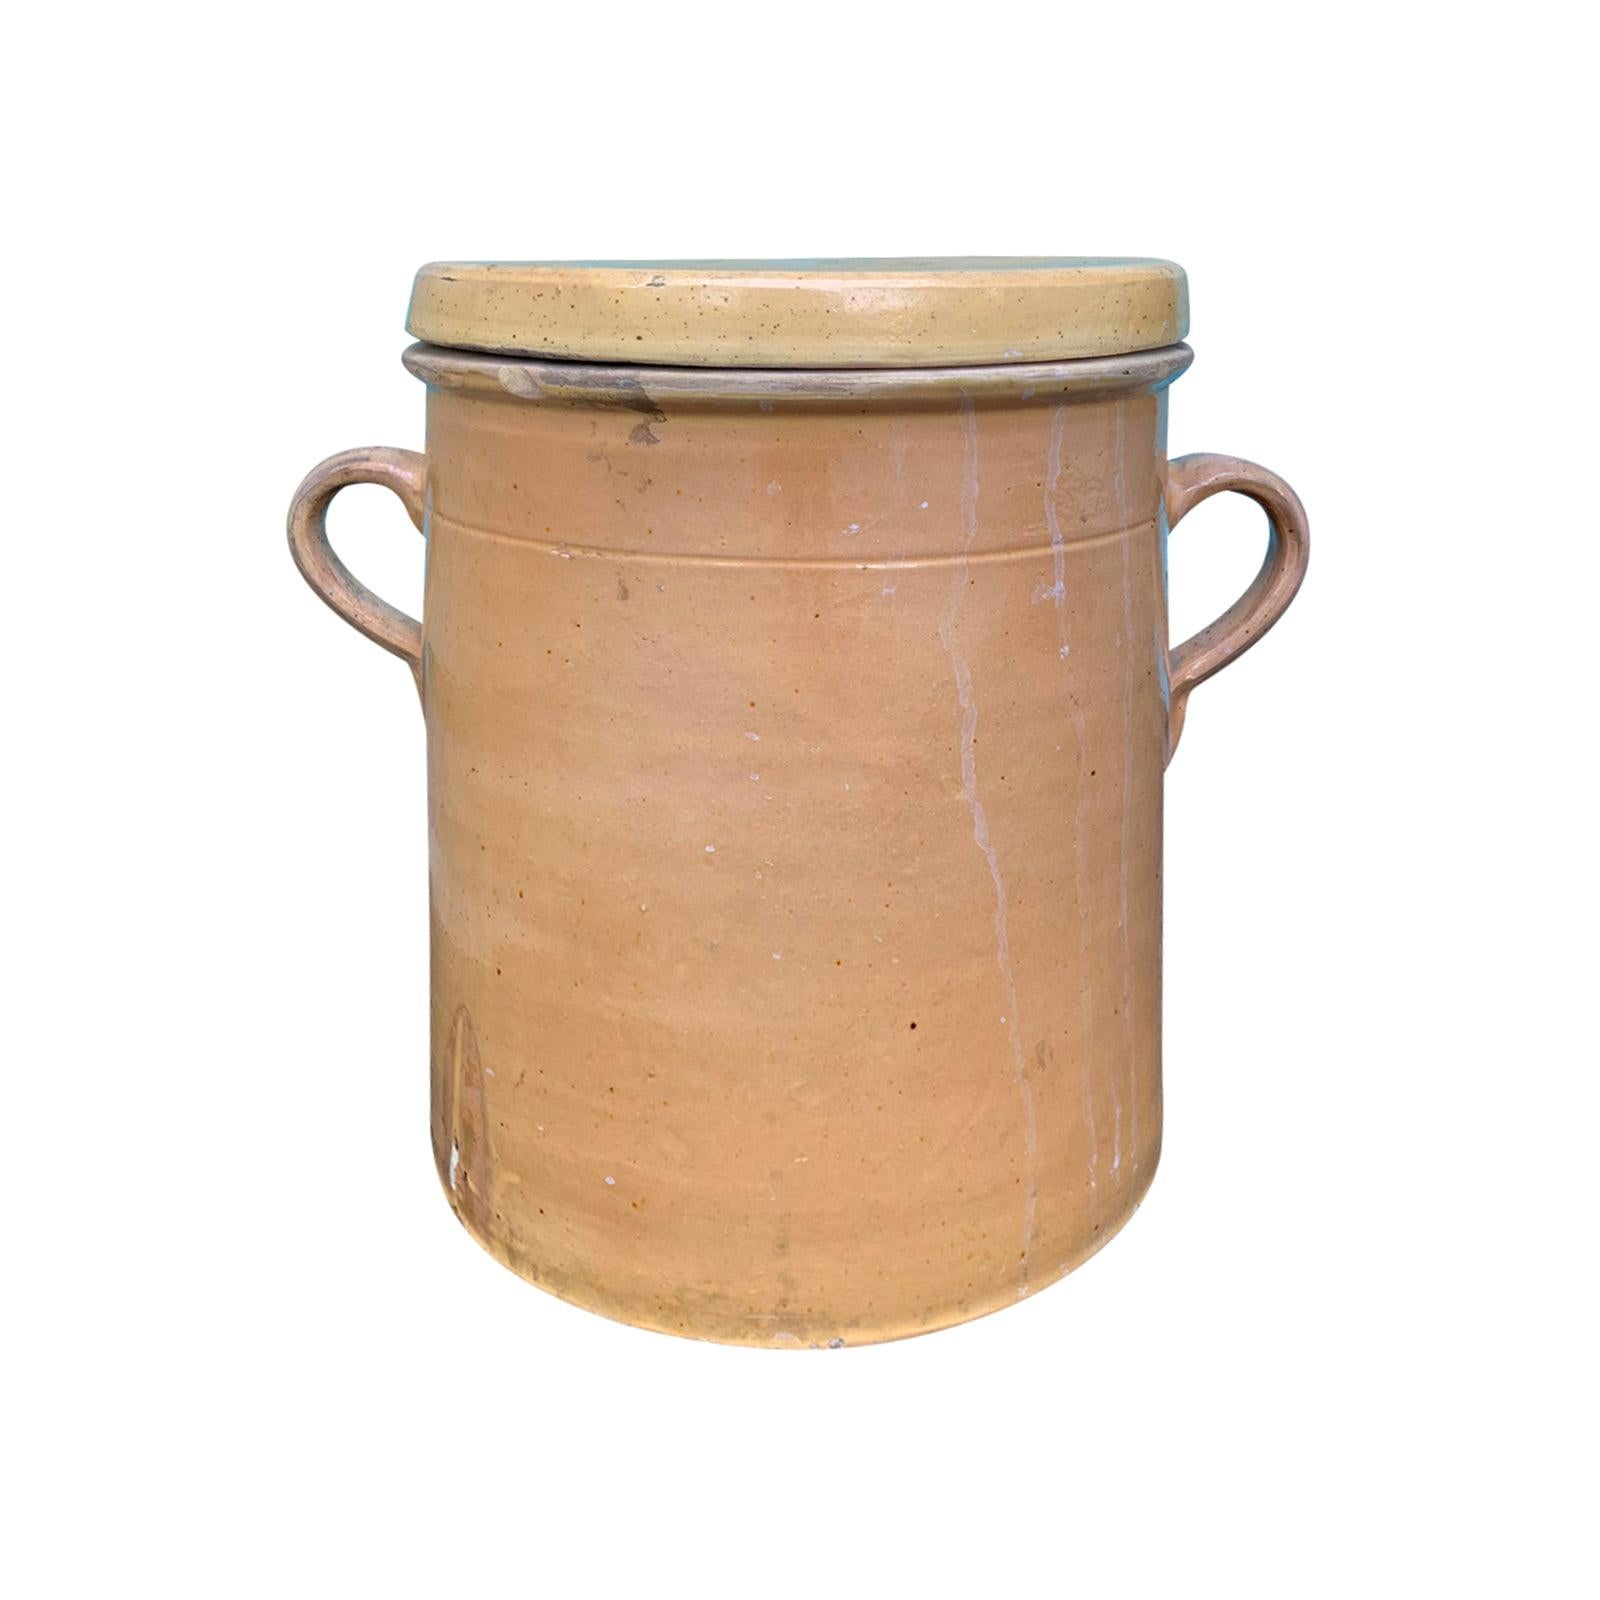 19th-20th Century Large French Crock with Lid